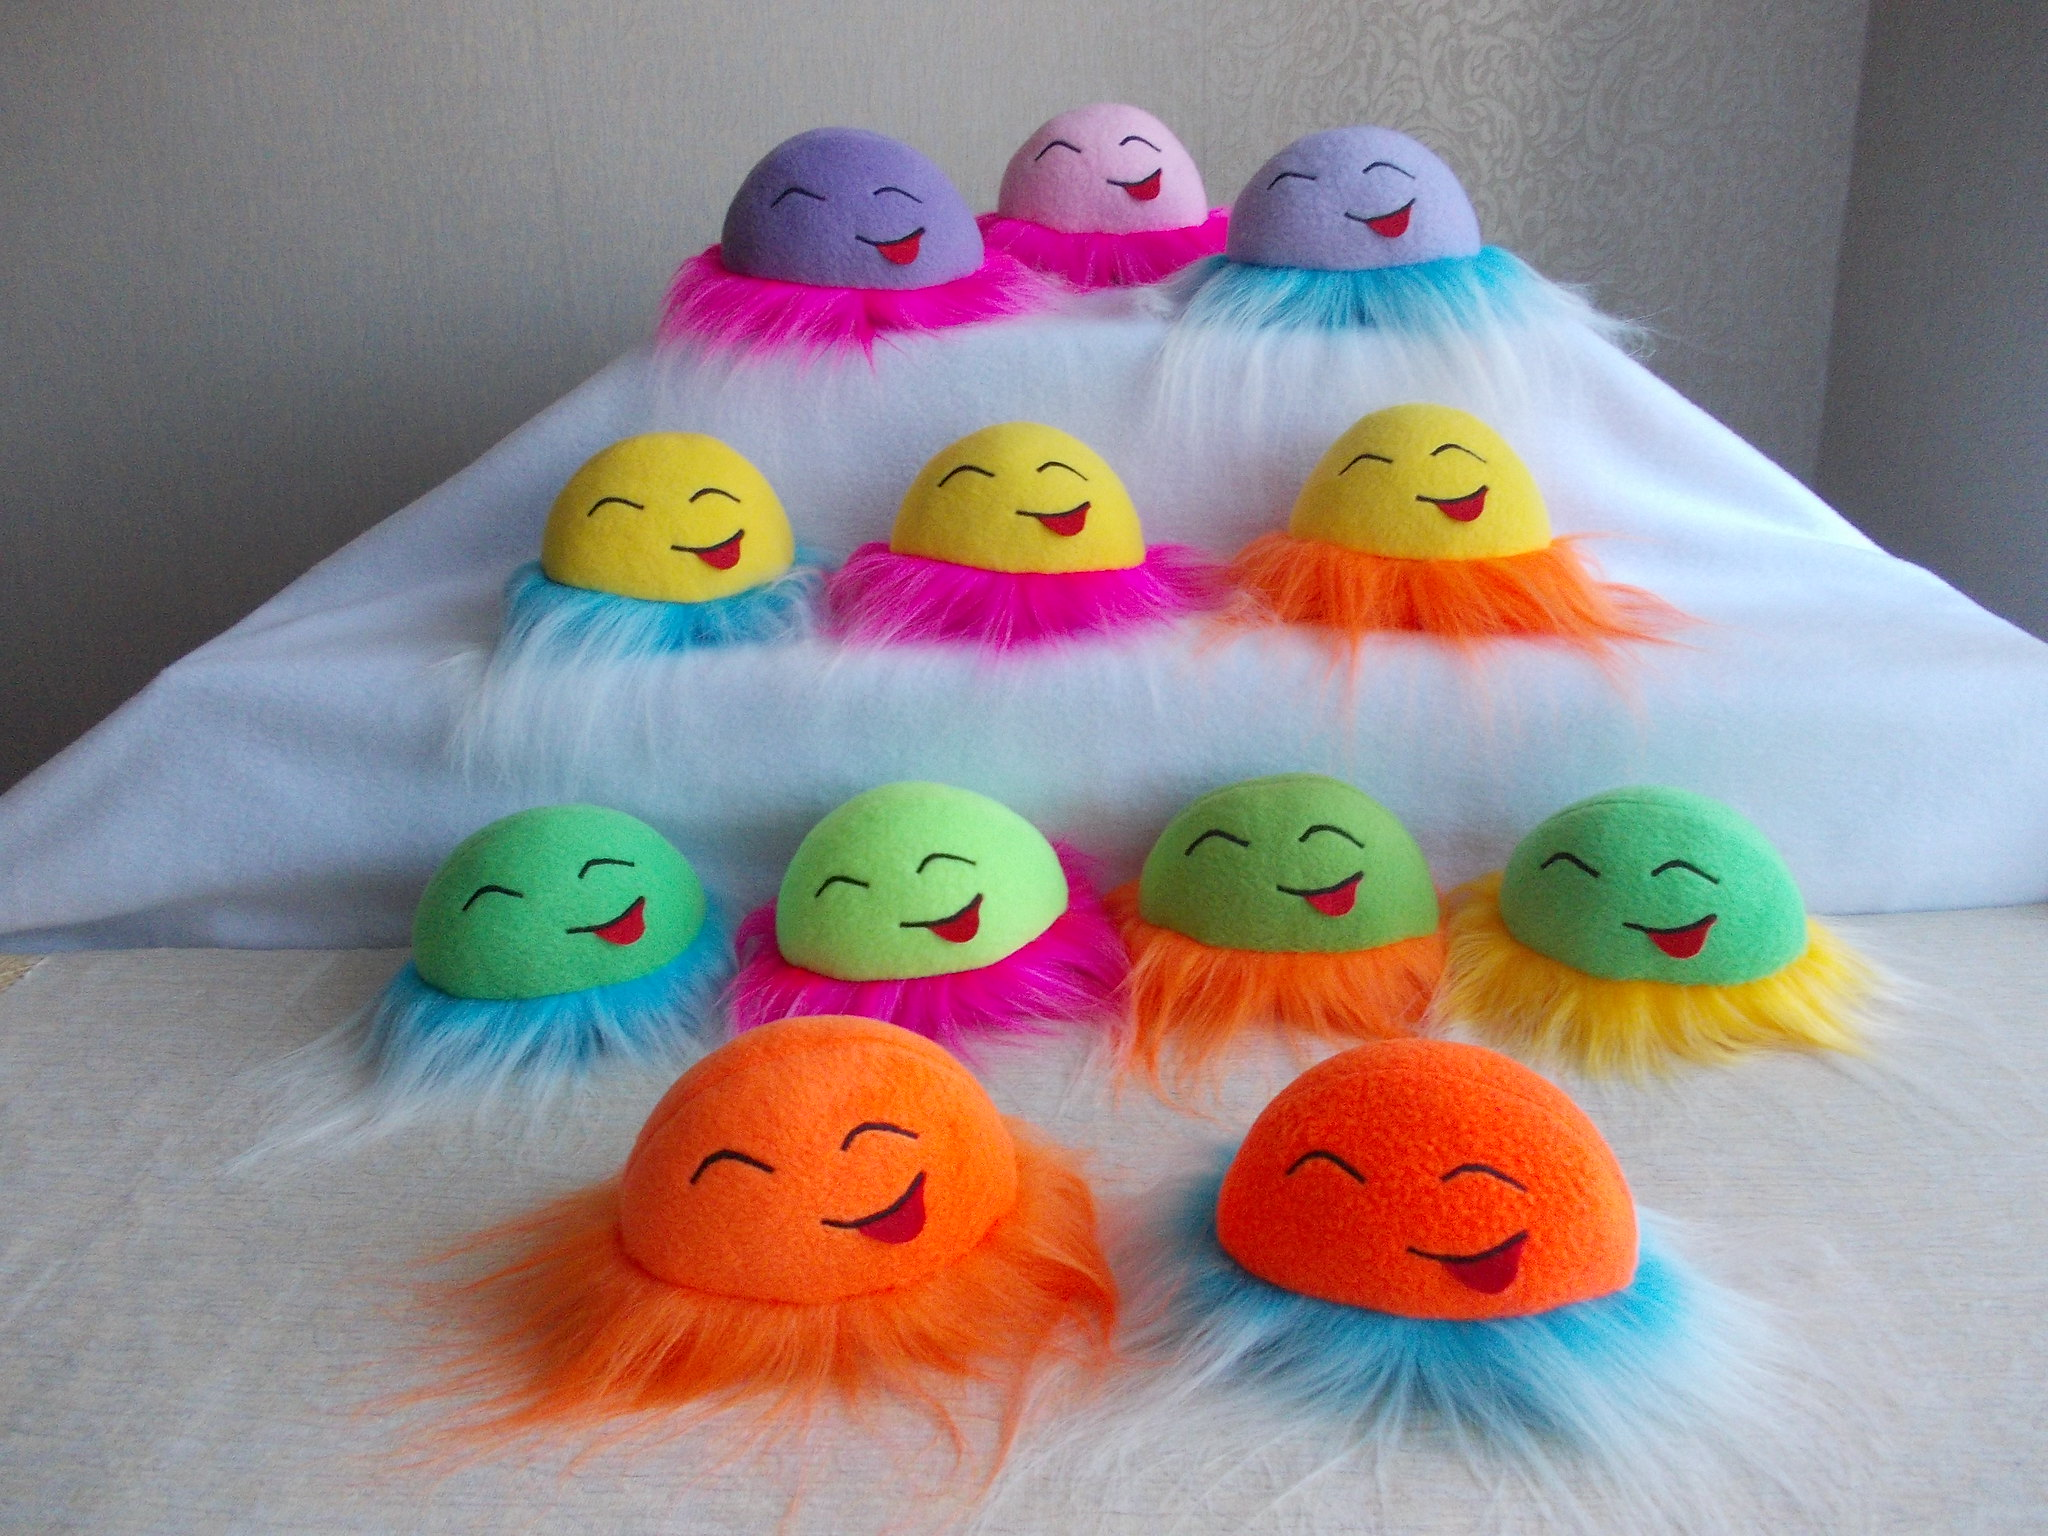 jellyfish, stuffed toys, plush toys, stuffed animals, baby toys, fluffy toys, personalised toys, name toys_5